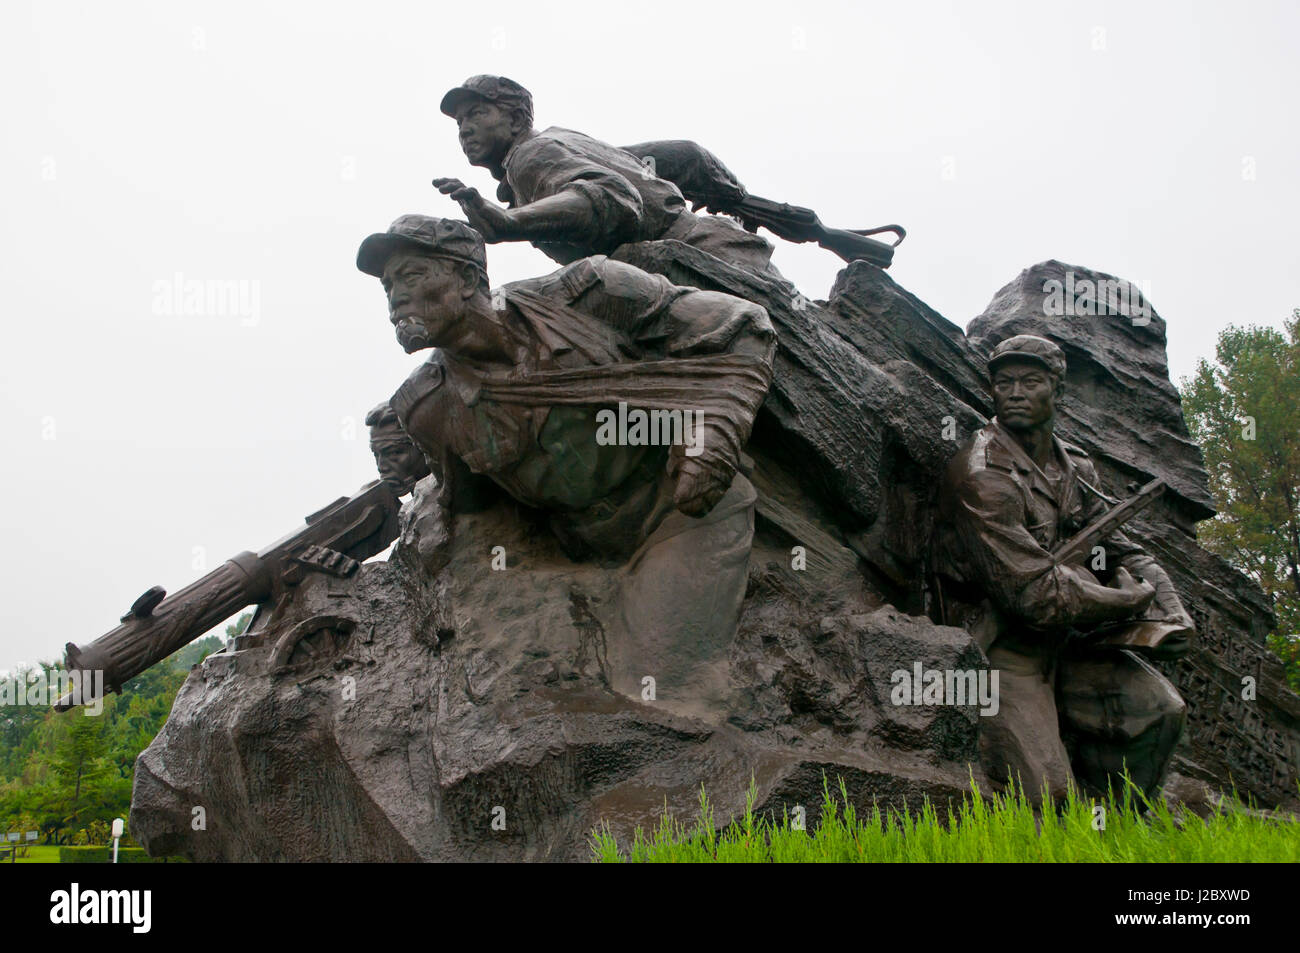 The monument to the victorious fatherland liberation war, Pyongyang, North Korea - Stock Image